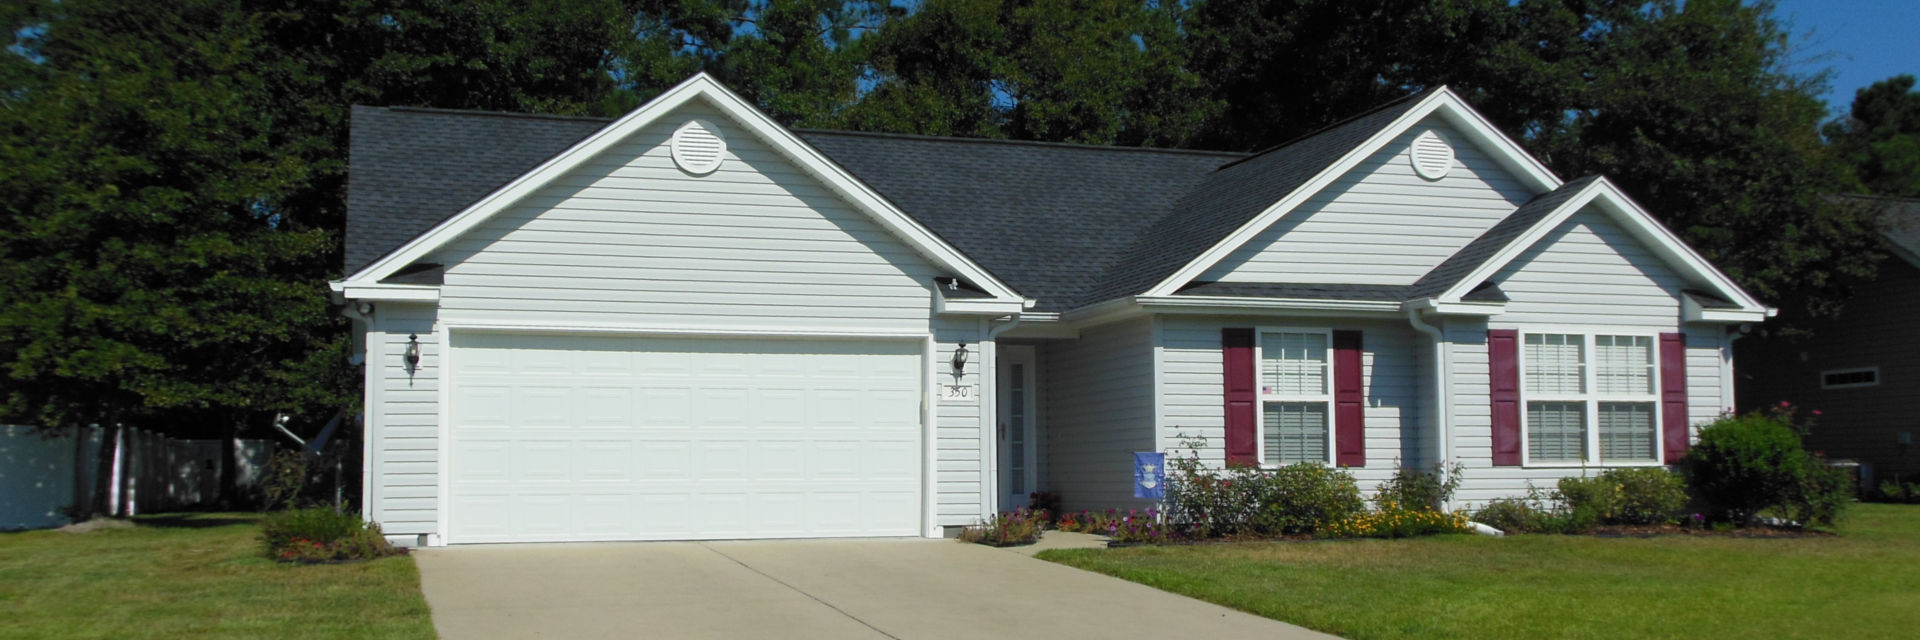 Foreclosure Listngs Bank Owned Homes For Sale in Myrtle Beach